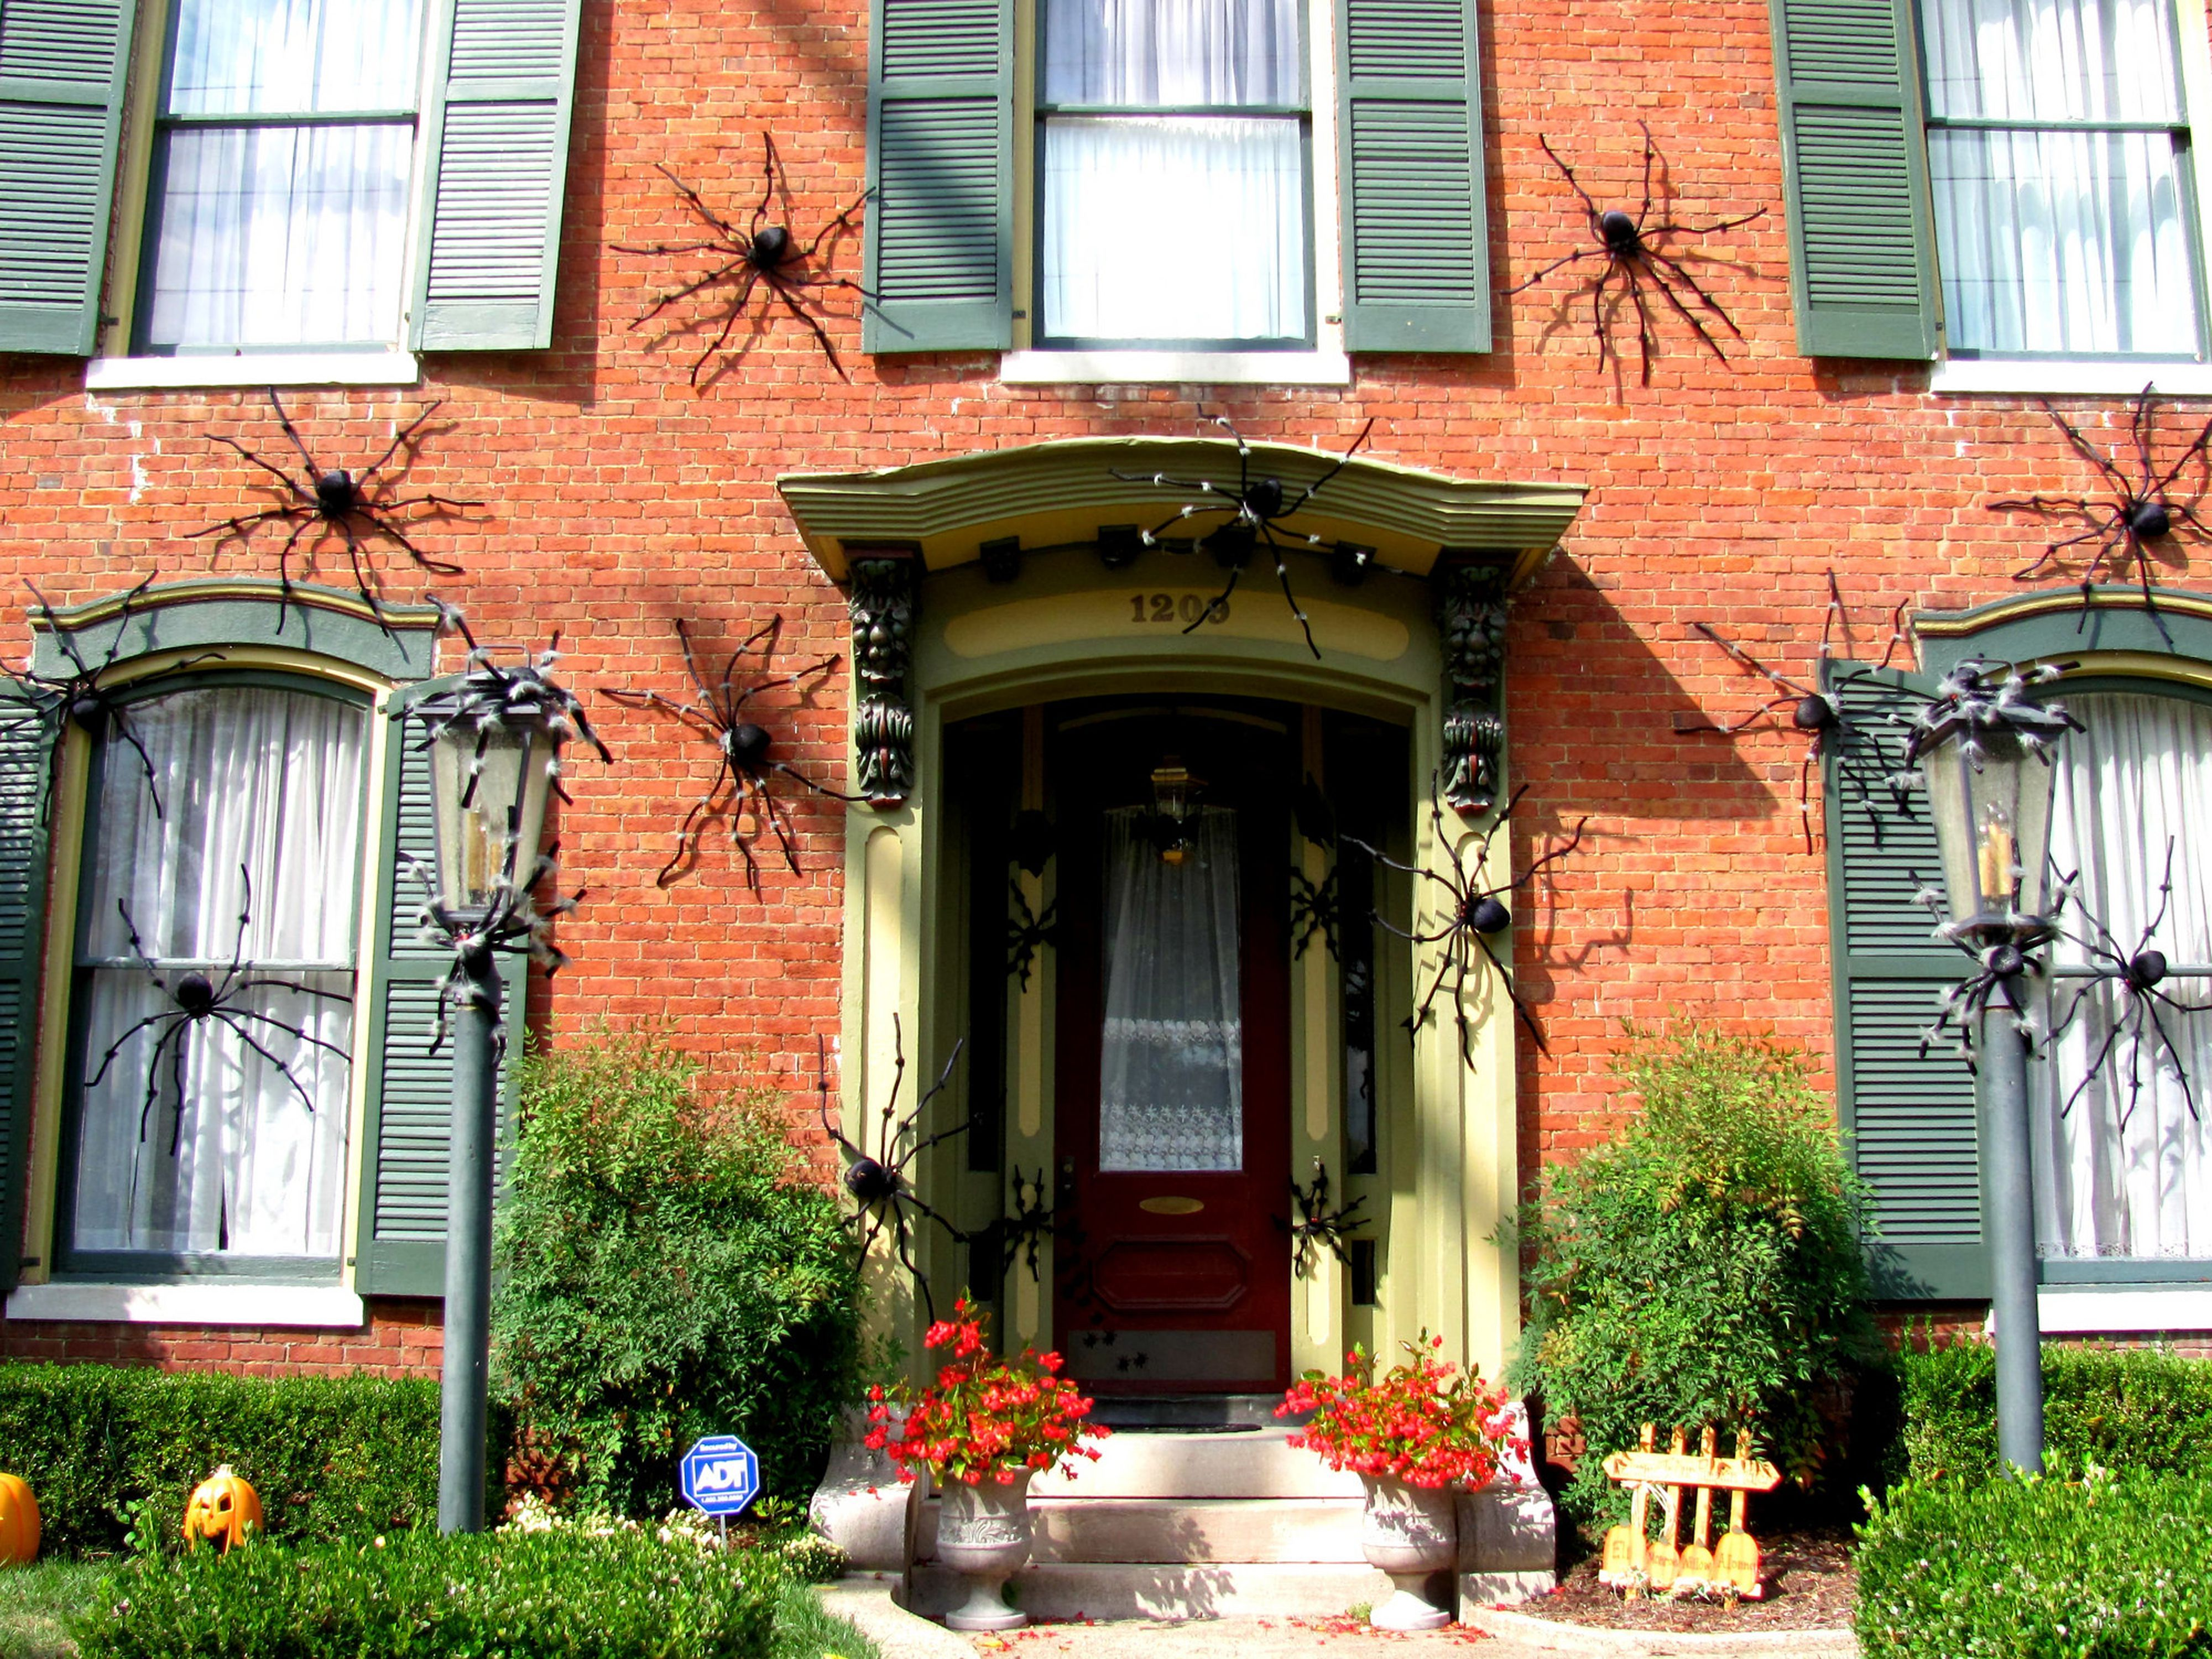 DIY Giant Spider Decorations Spider Outdoor Halloween Decor